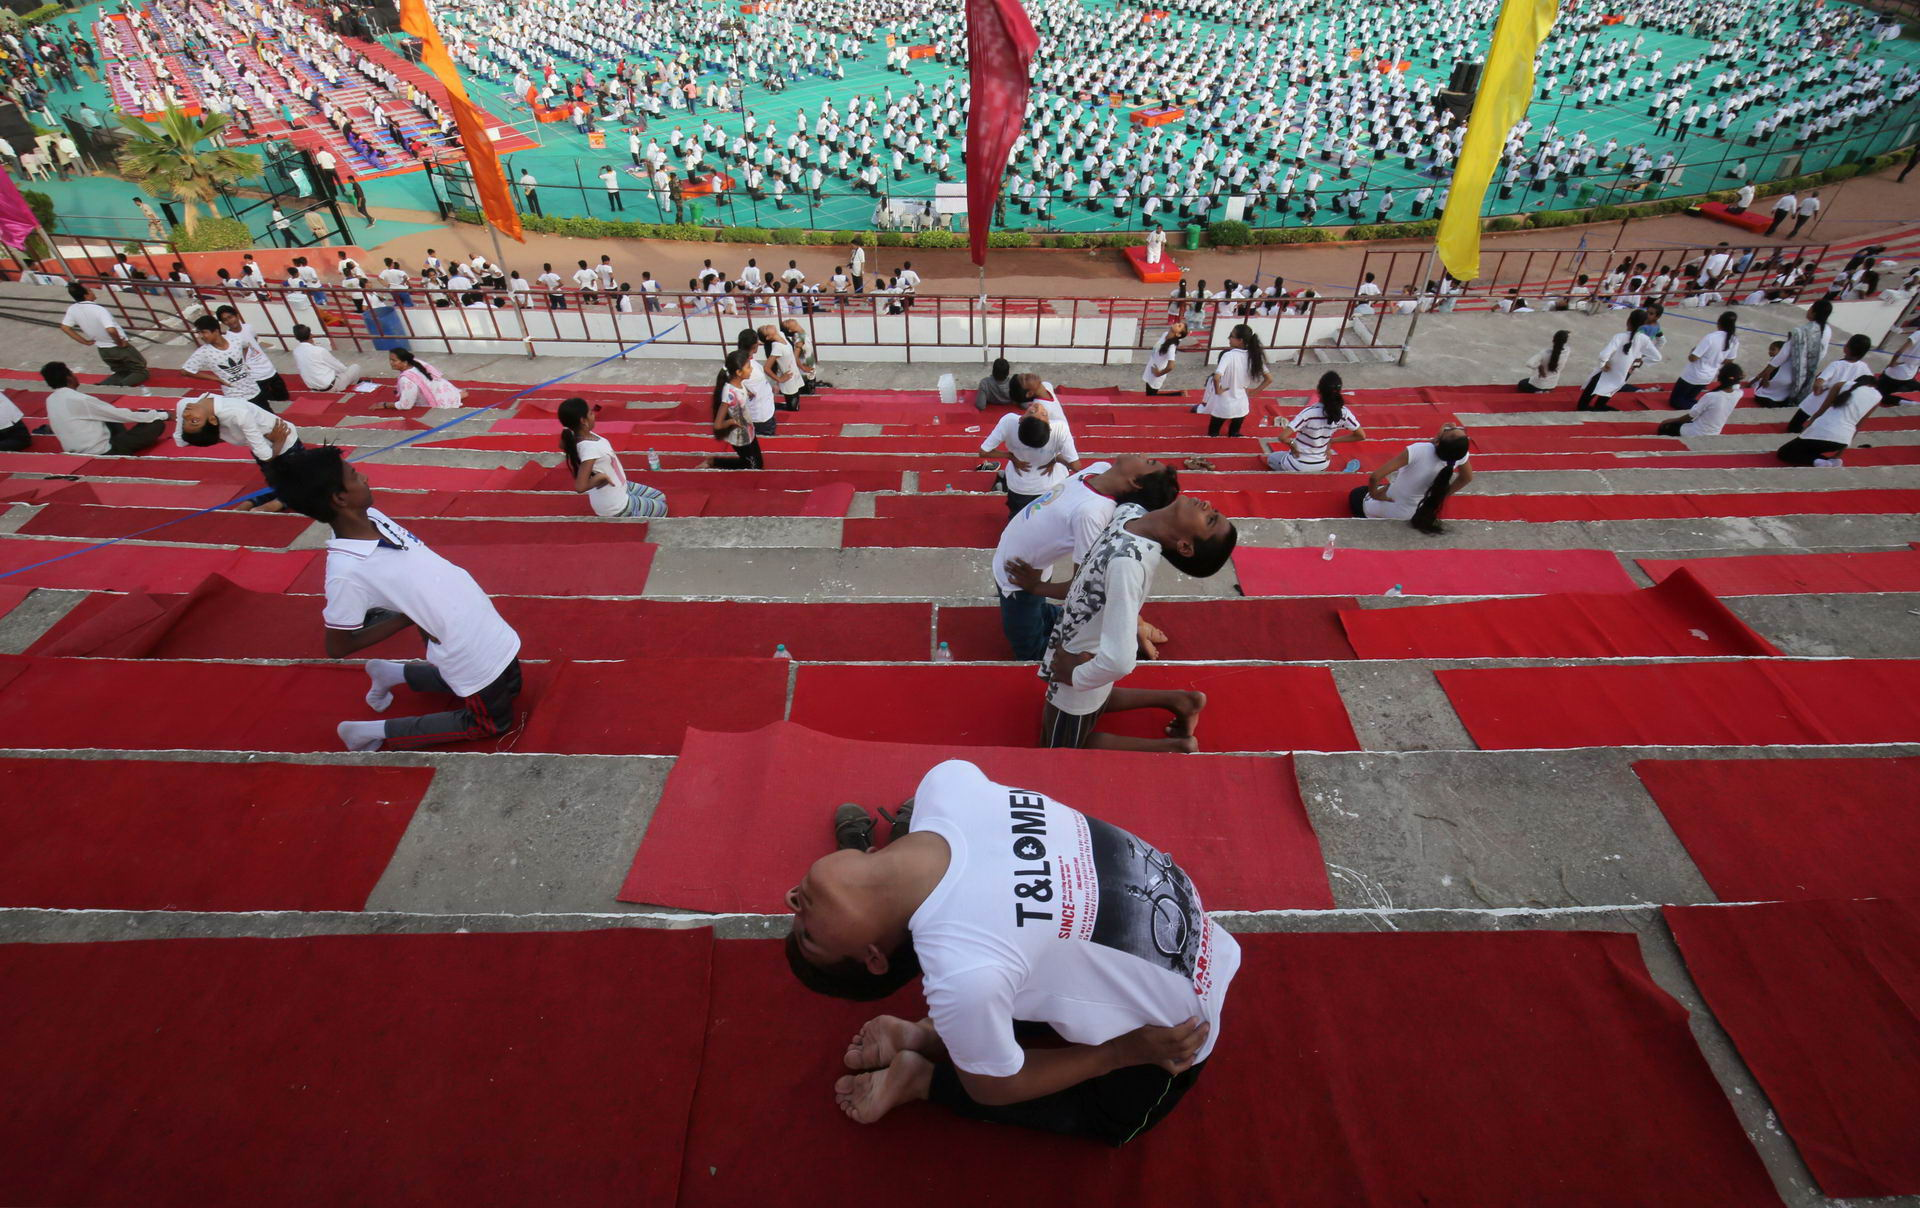 Participants perform yoga at a stadium during International Yoga Day in Ahmedabad